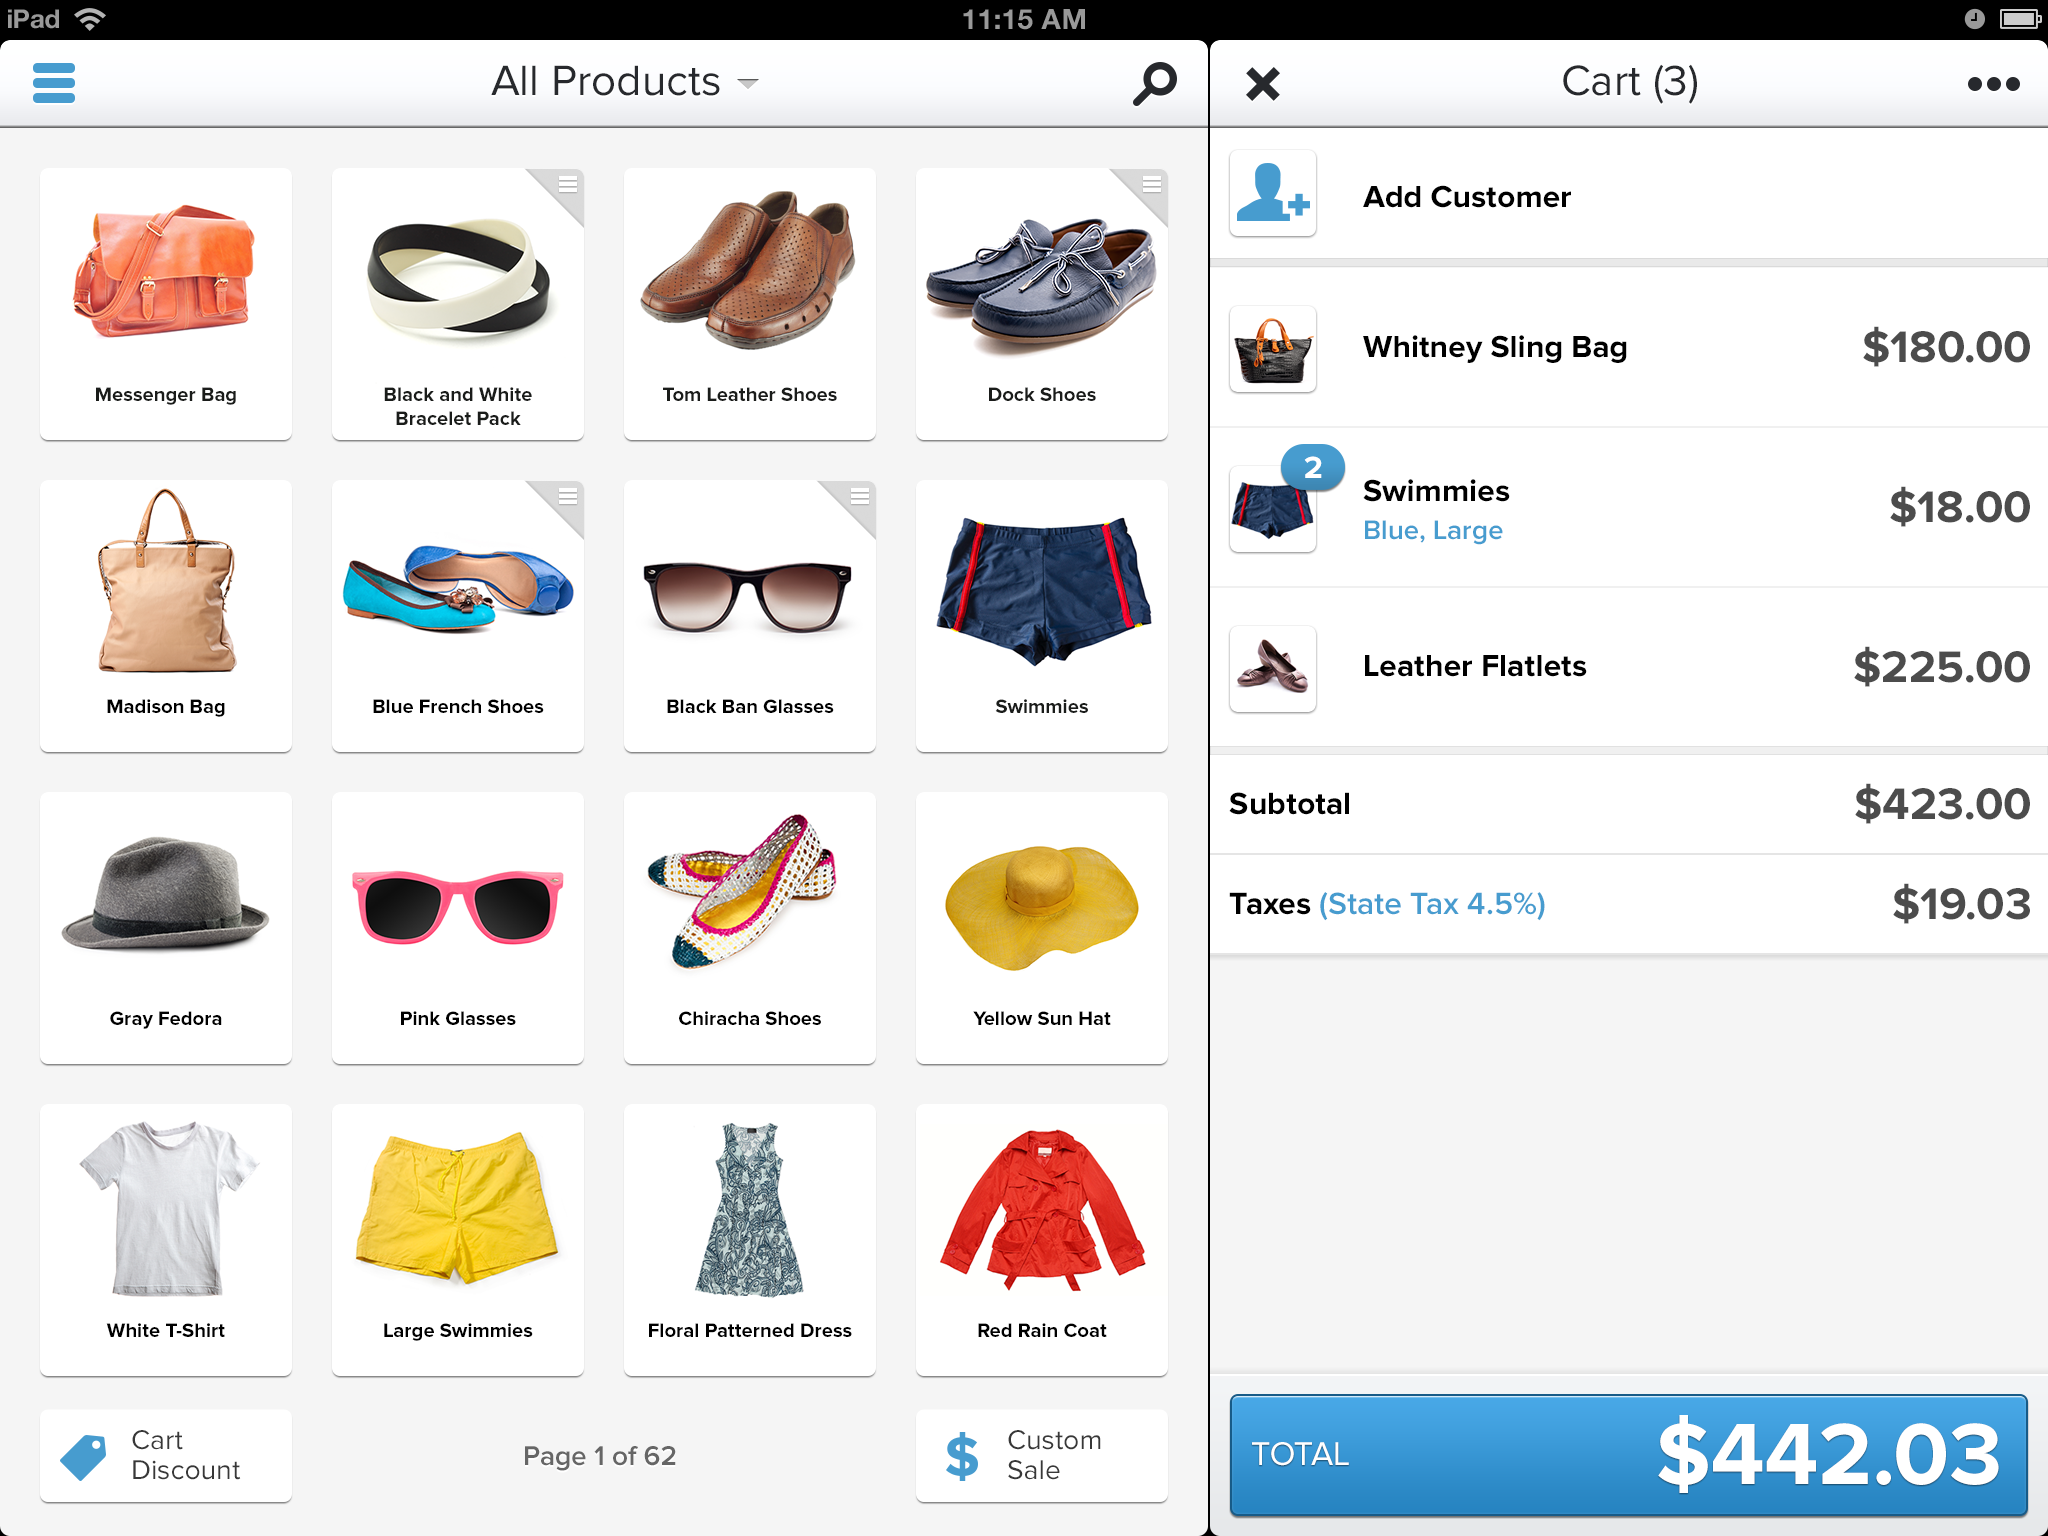 Point of Sale System for iPad - Shopify POS App